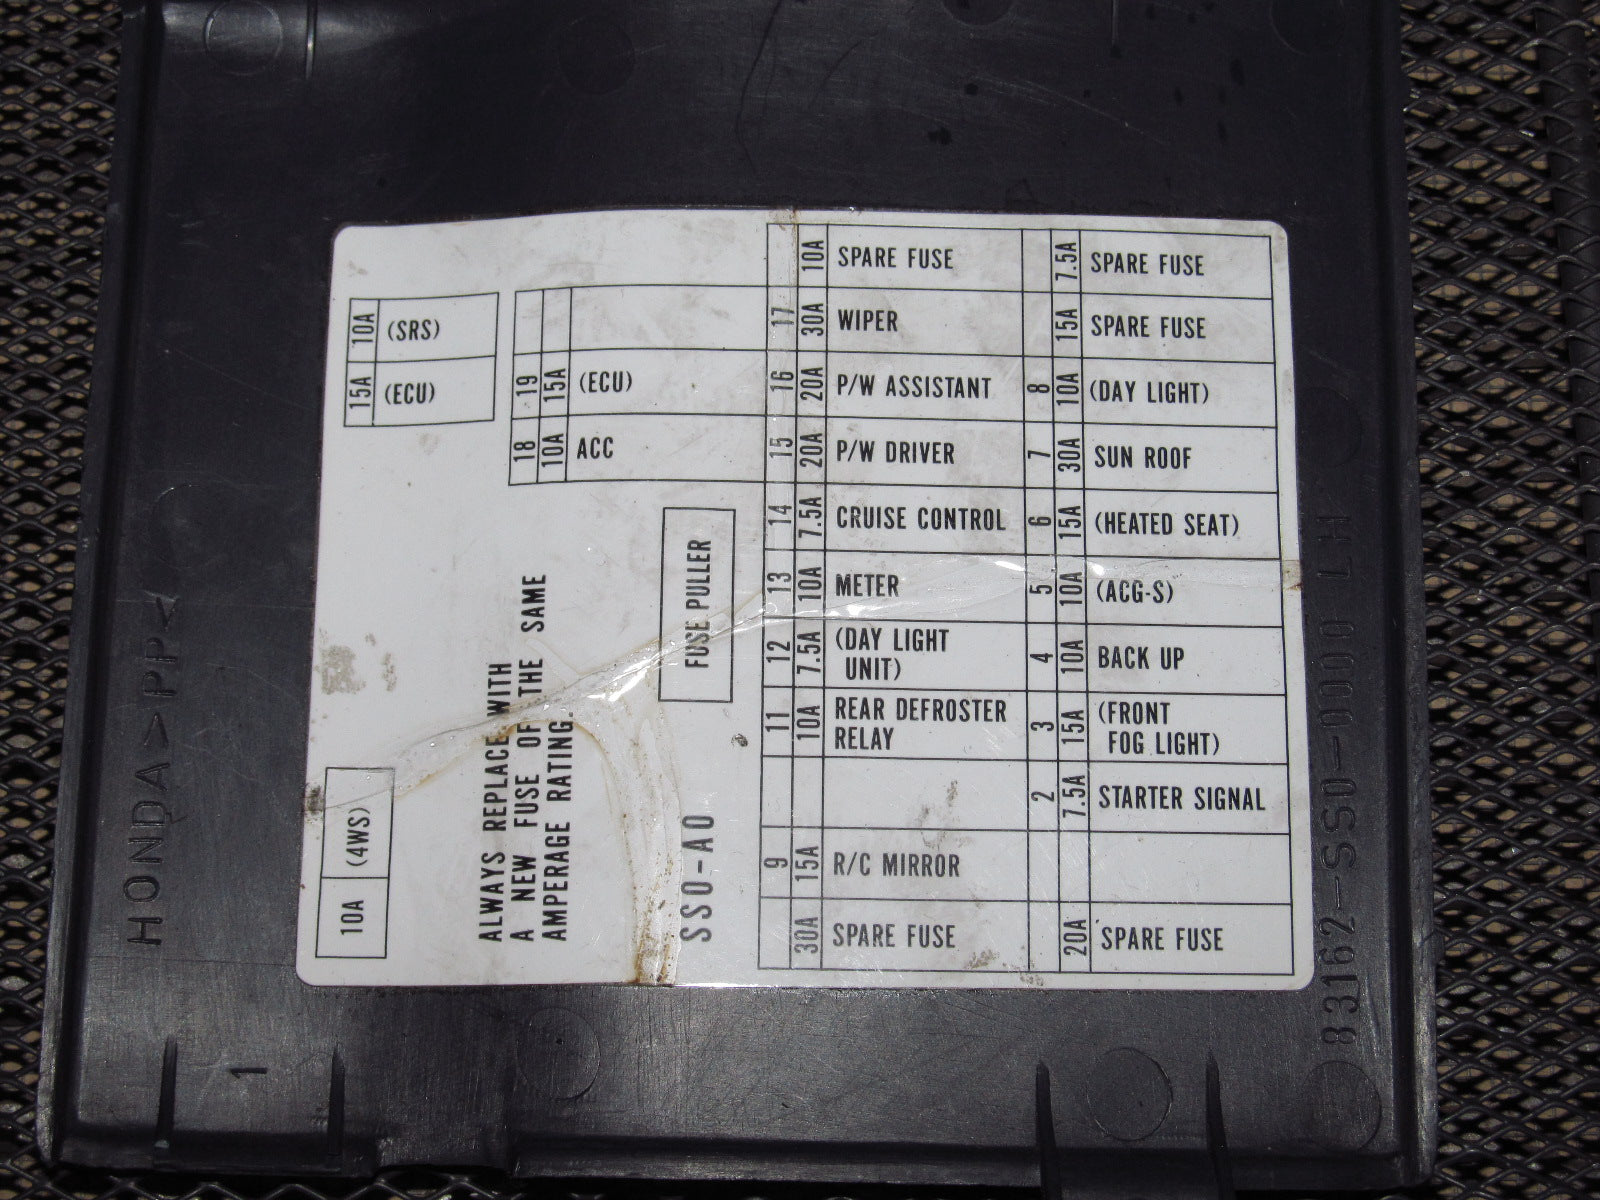 95 accord fuse box 92 93 94 95 96 honda prelude oem interior fuse box cover  92 93 94 95 96 honda prelude oem